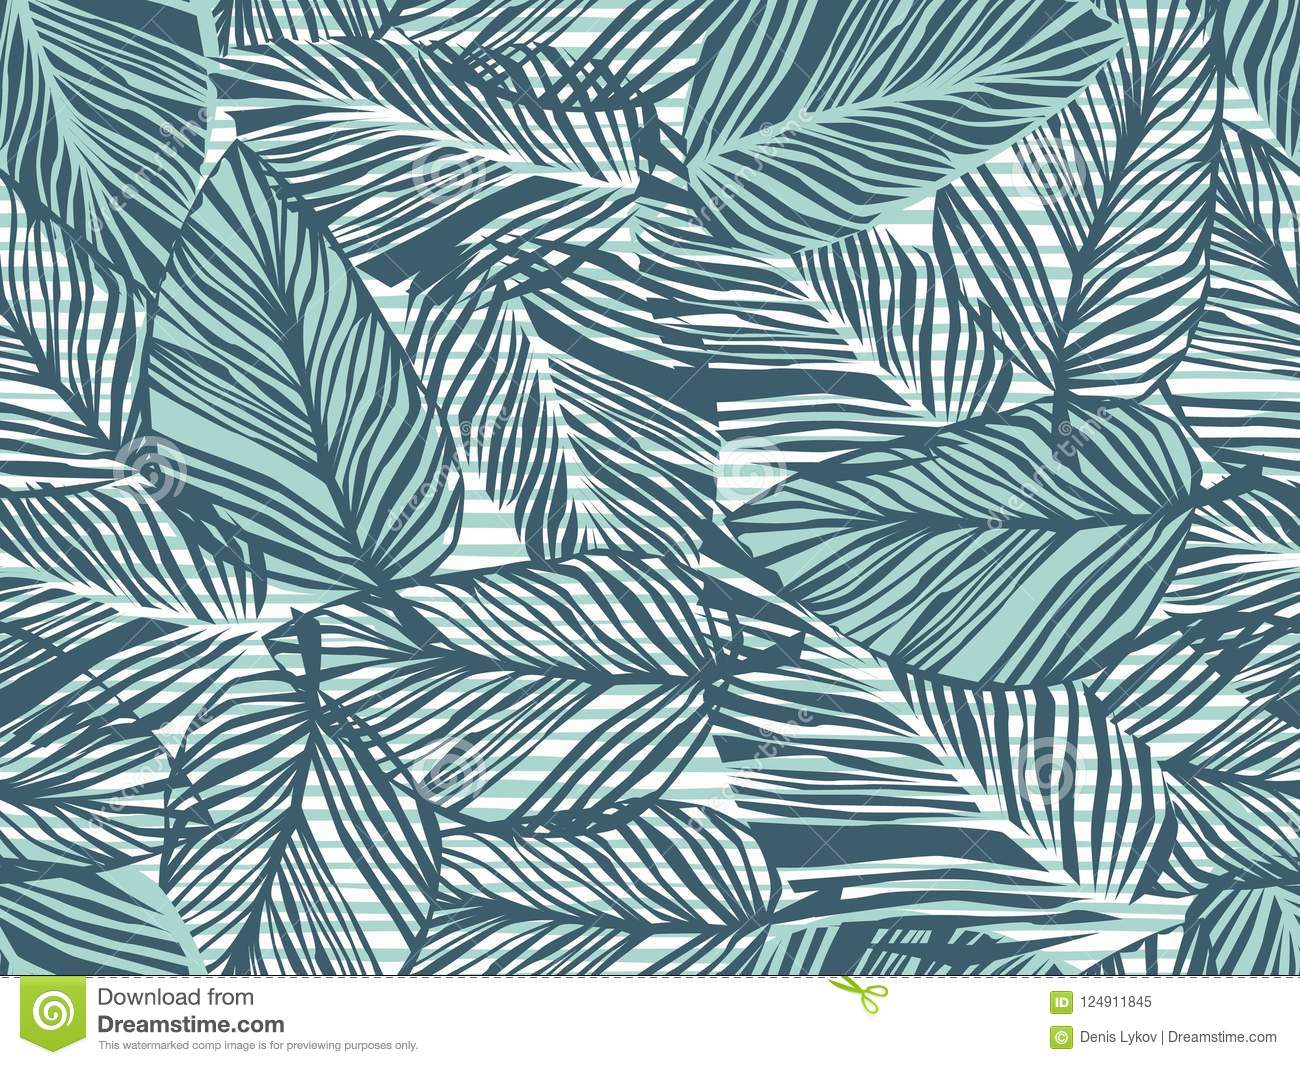 Tropical pattern, palm leaves seamless vector floral background. Exotic plant on stripes print illustration. Summer nature jungle